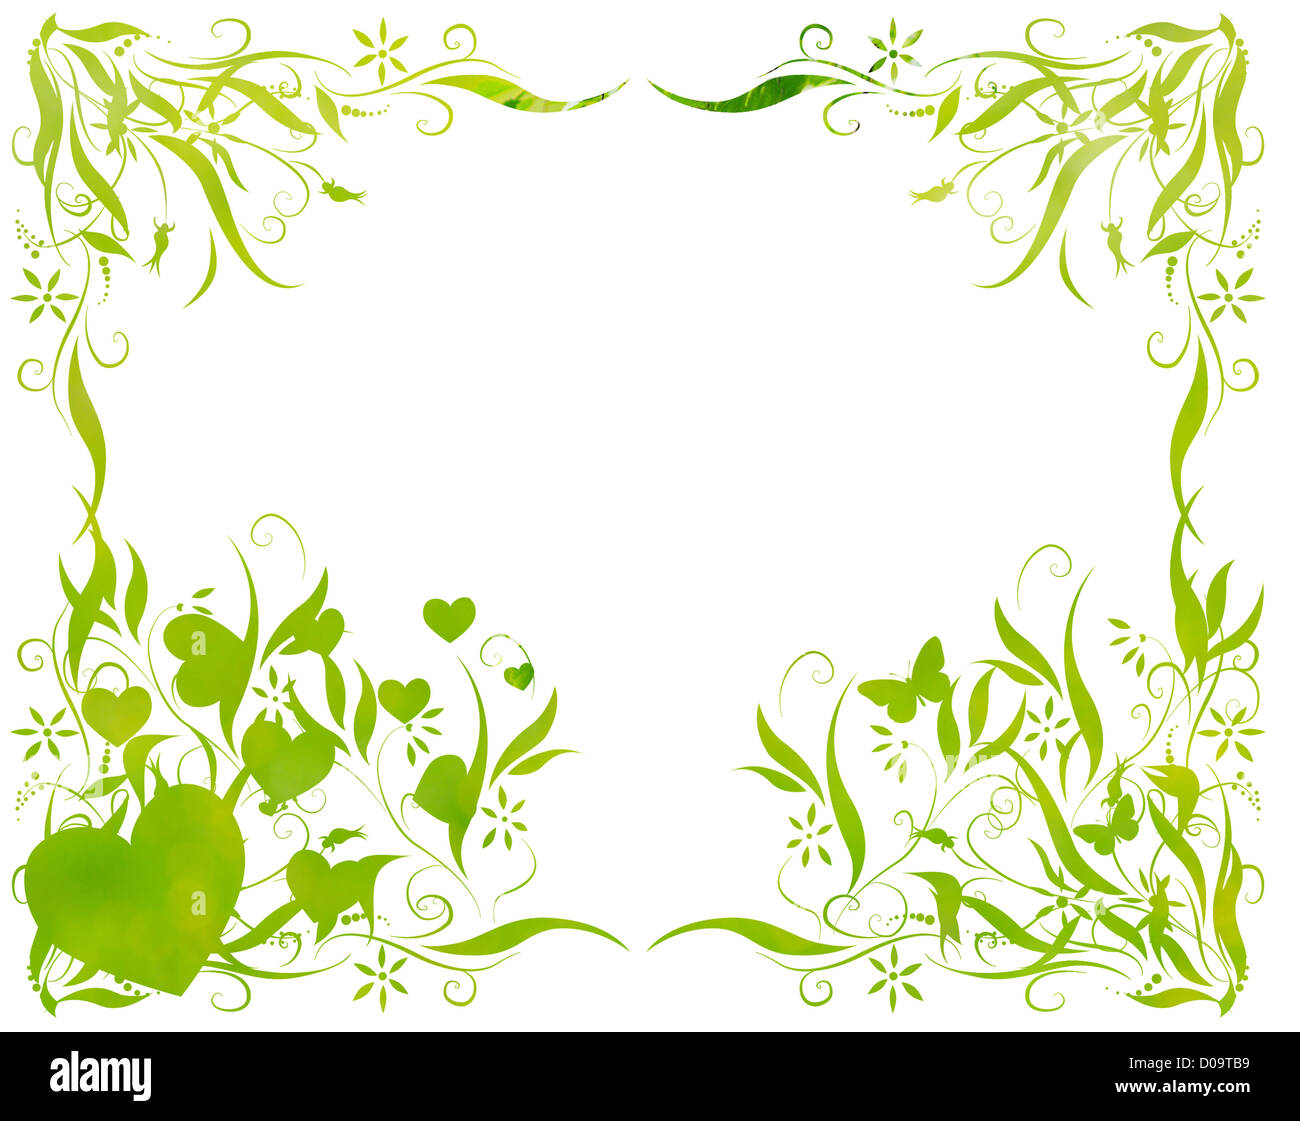 floral foliage beautiful arty background against white - Stock Image